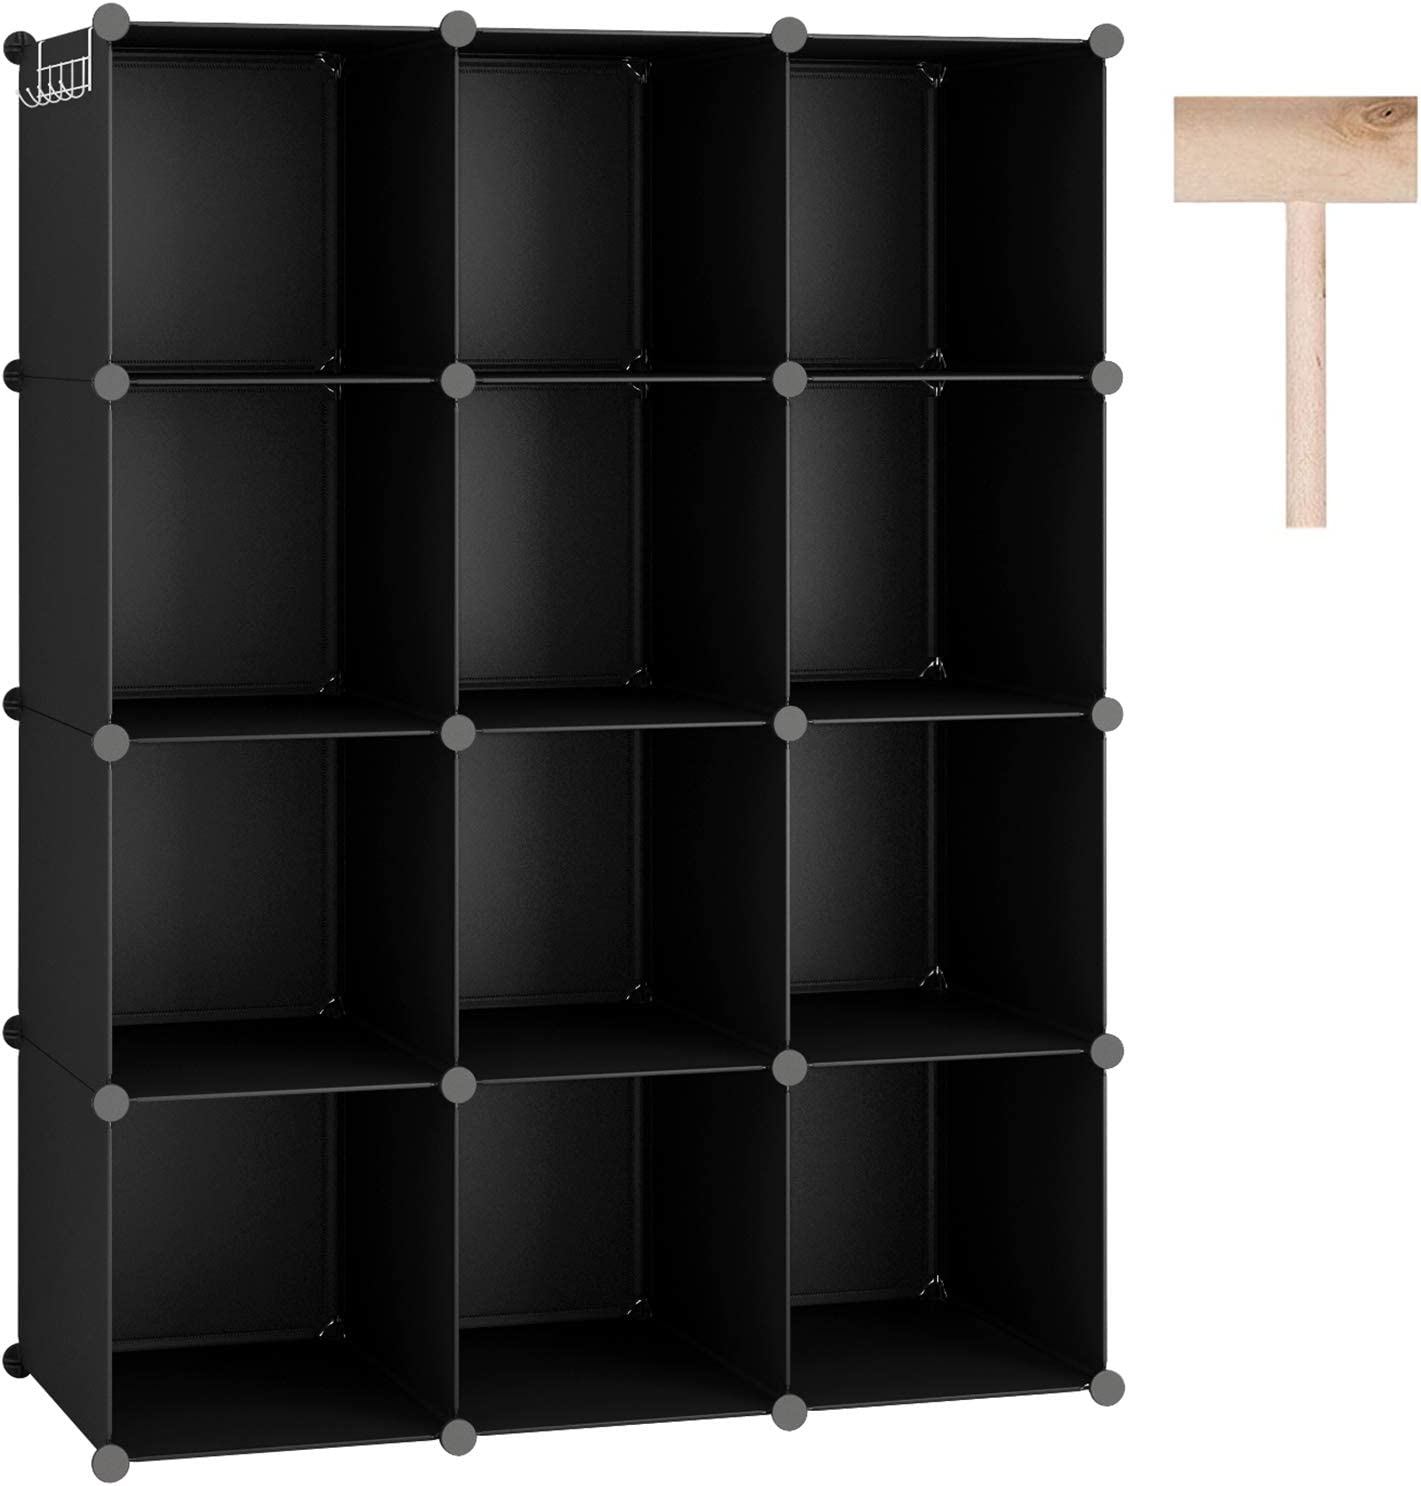 "C&AHOME Cube Storage Organizer, 10-Cube Shelves Units, Closet Cabinet, DIY  Plastic Modular Book Shelf, Ideal for Bedroom, Living Room, Office, 10.10"" L"